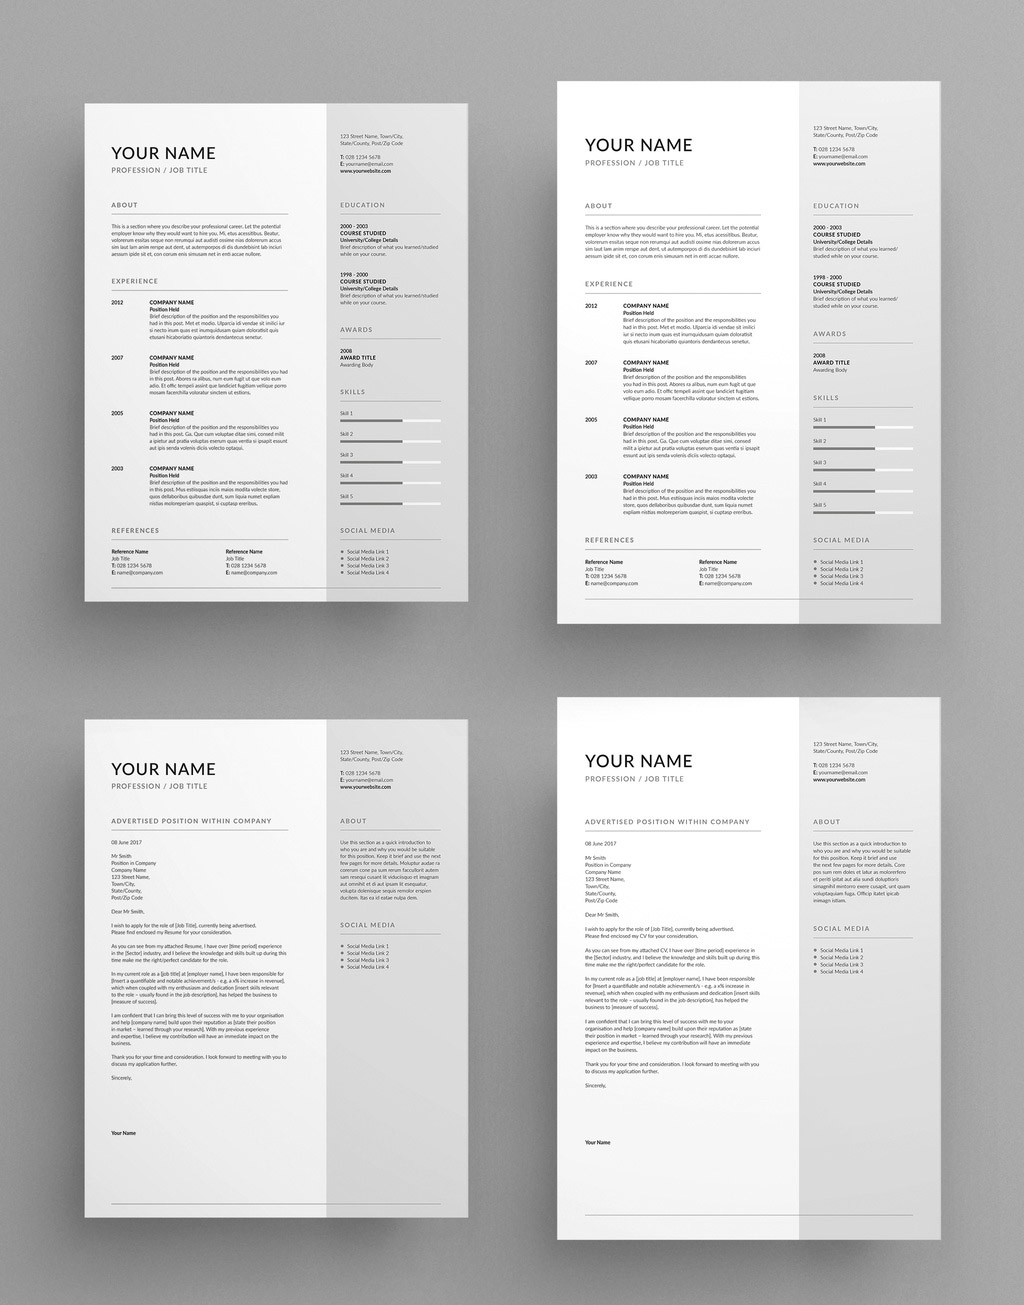 Simple and clean contemporary resume and cover letter layout.